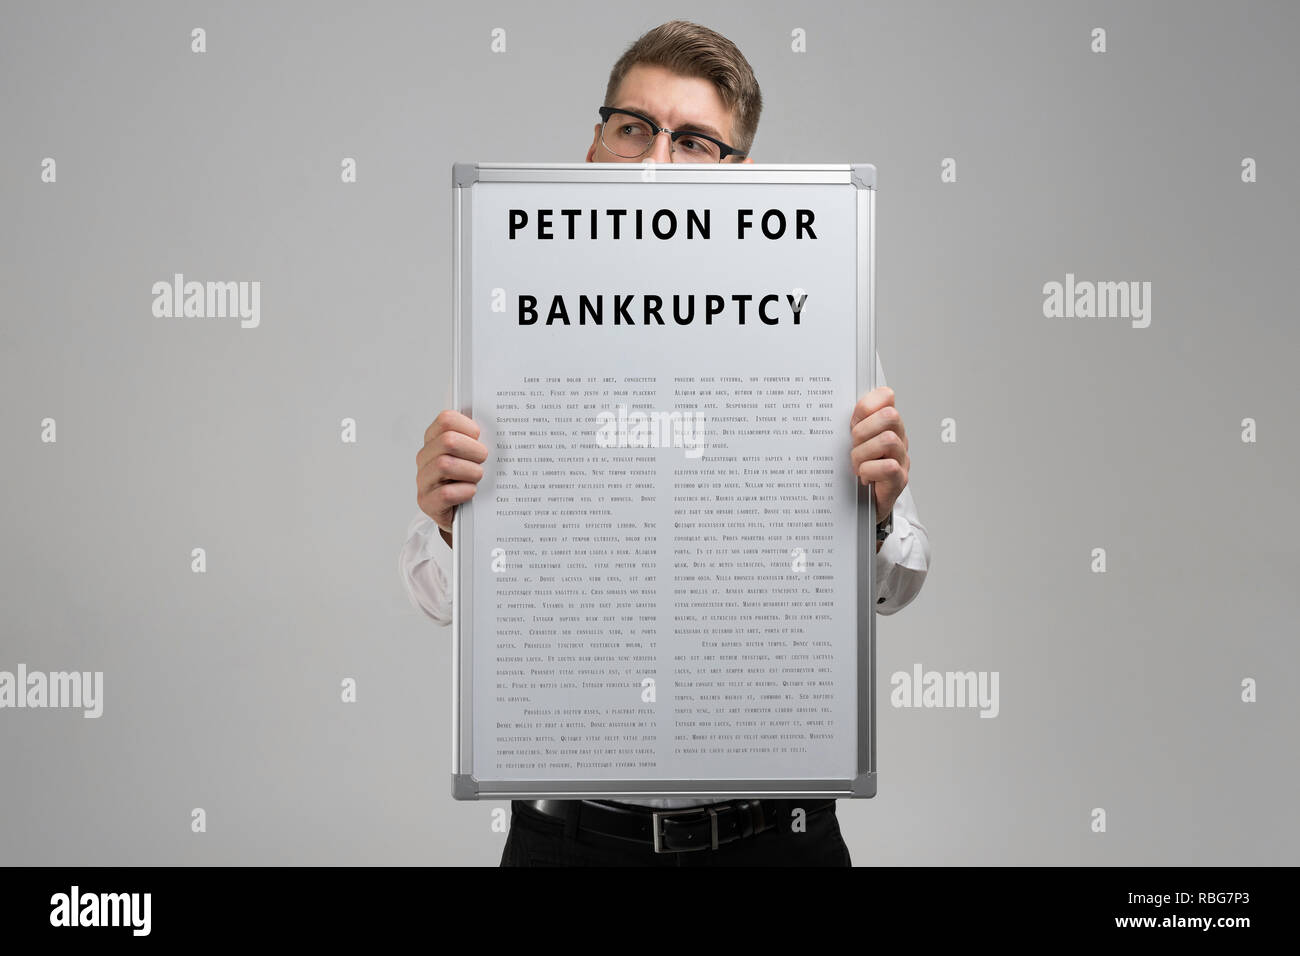 Young man keeps in front of him petition for bankruptcy isolated on light background - Stock Image